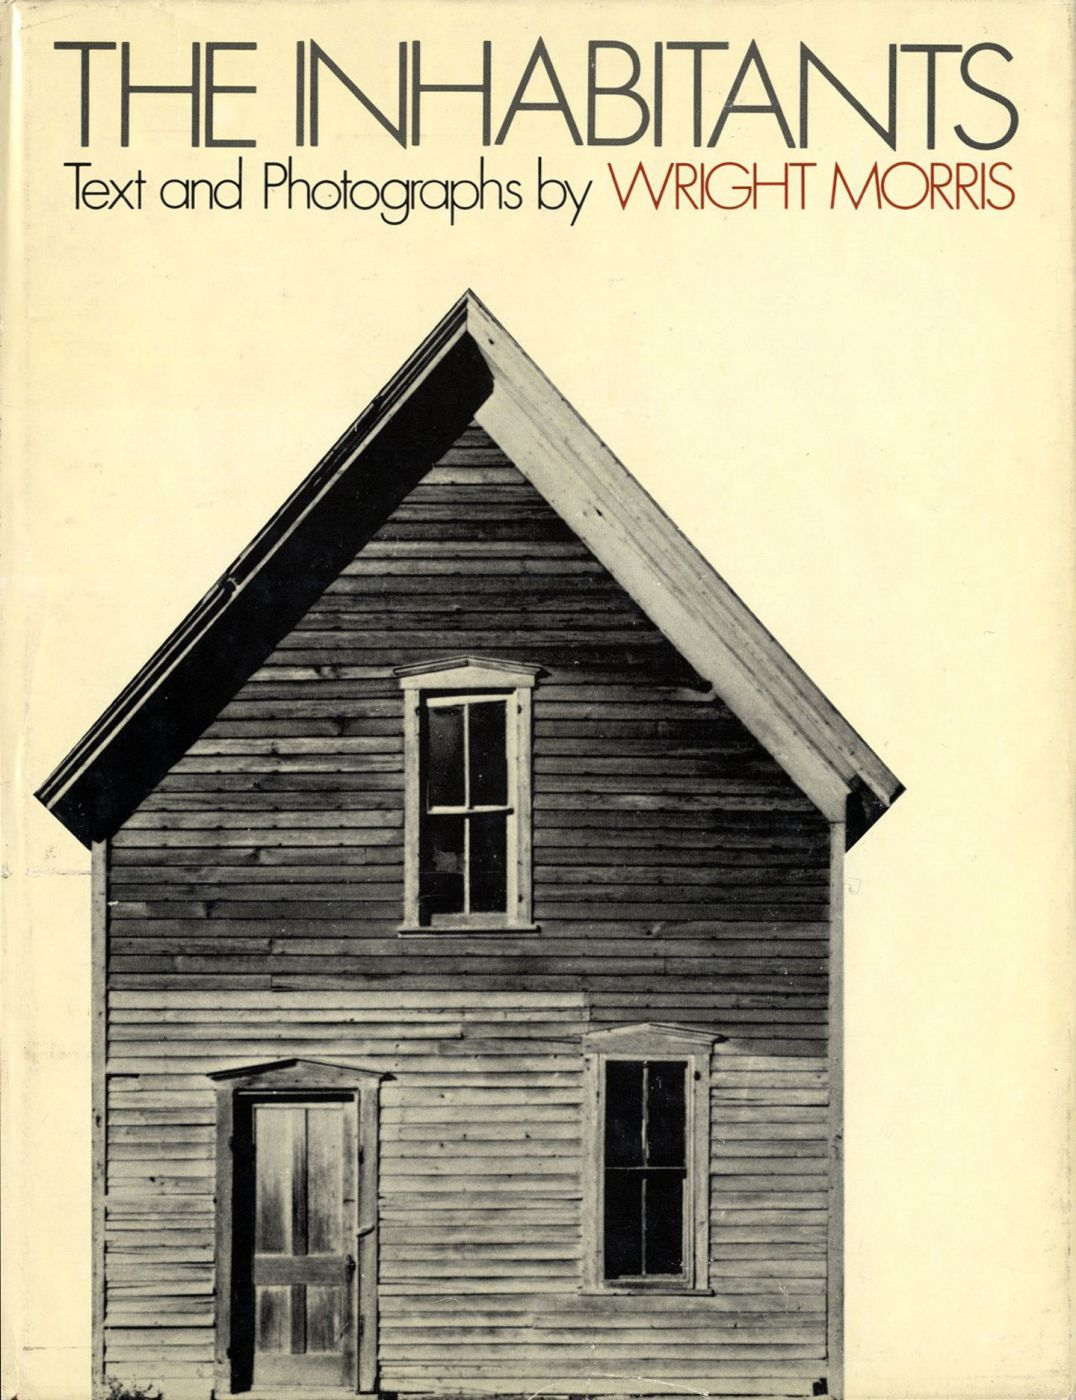 Wright Morris: The Inhabitants (Second Edition)